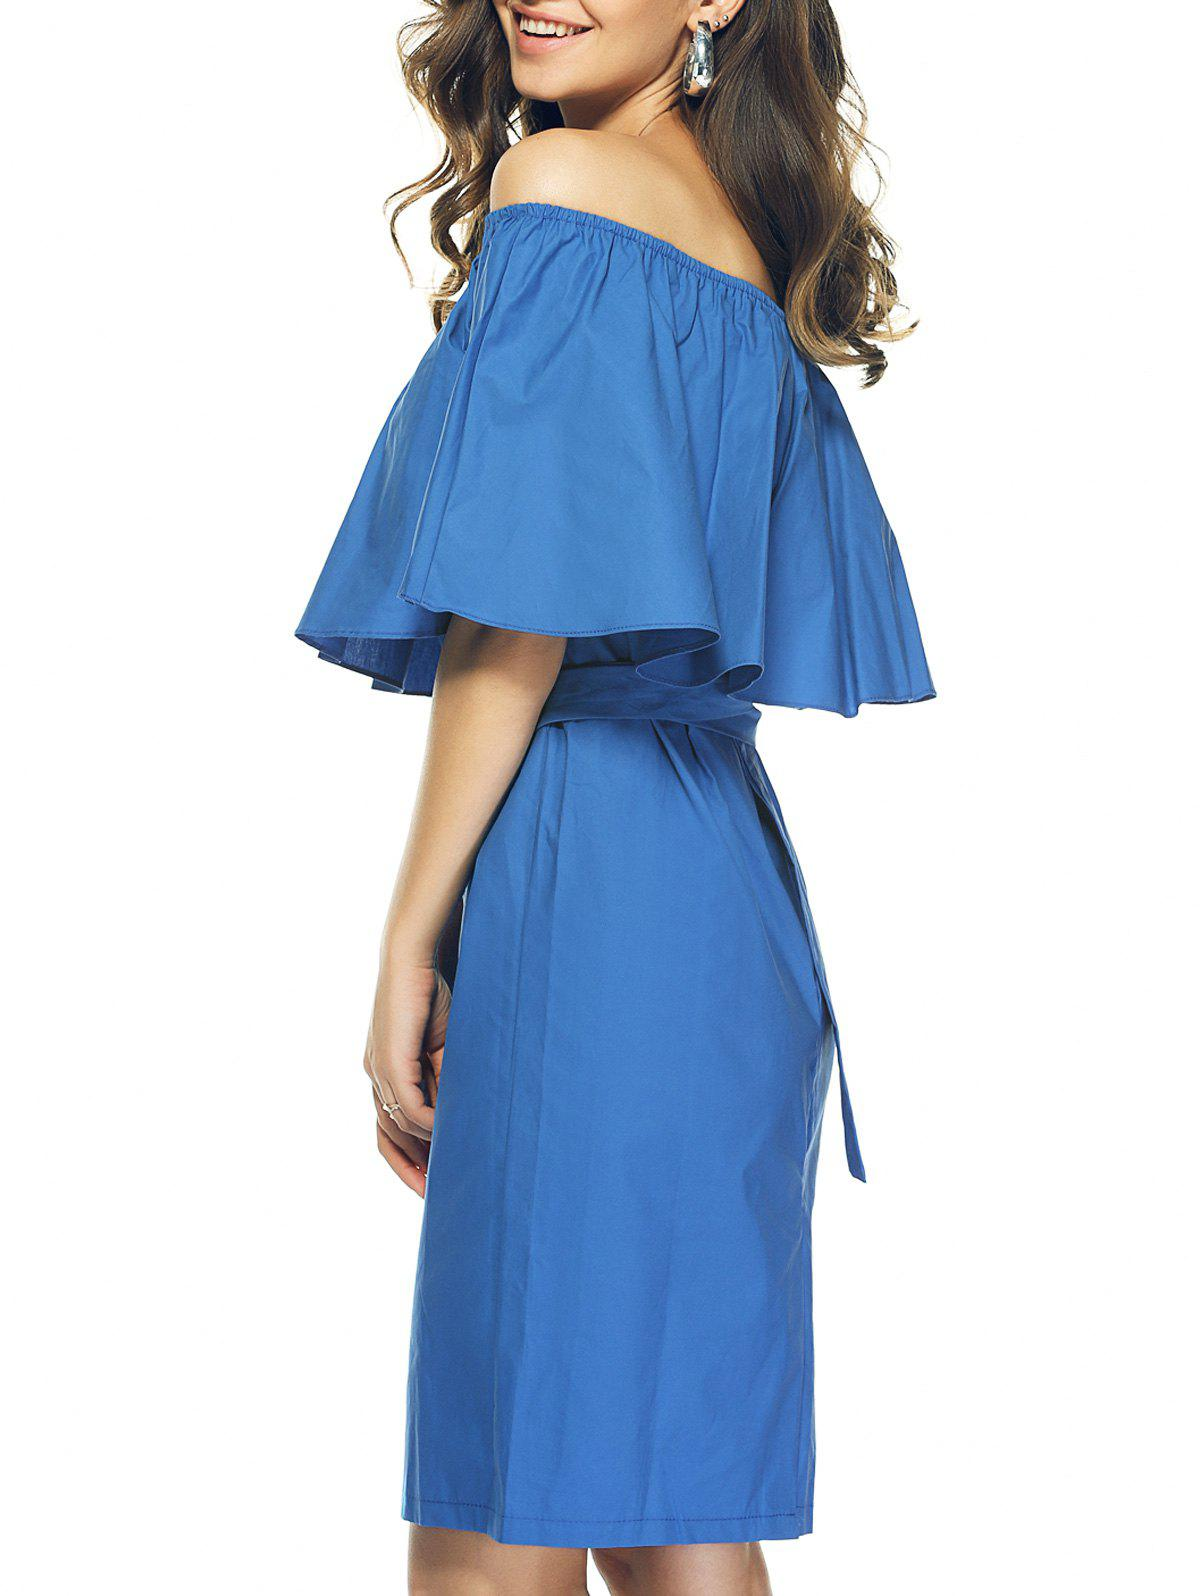 Cute Off The Shoulder Flounced Slimming Multiway Dress - BLUE XL